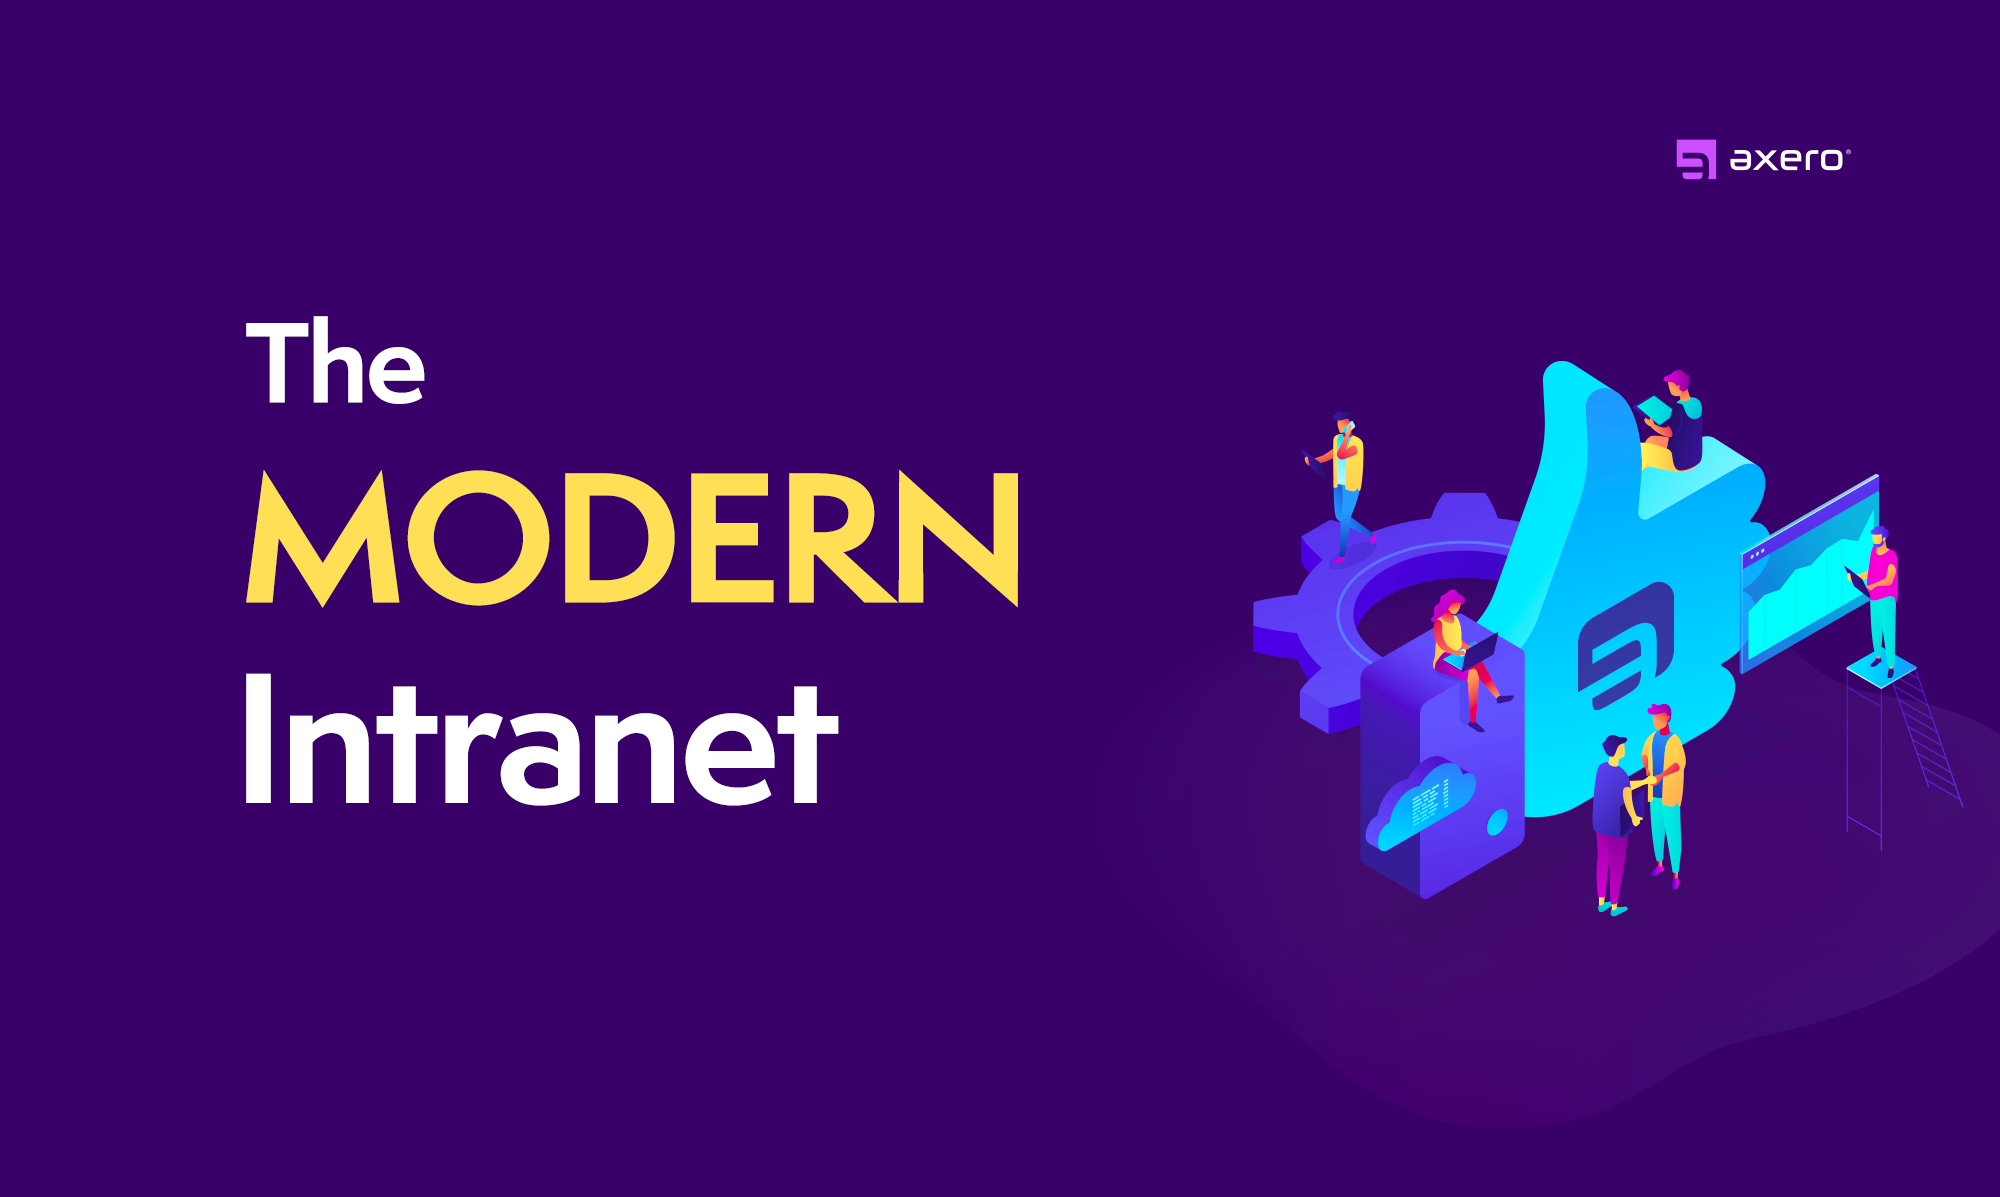 The Modern Intranet: Here's What You Can Expect from Your Intranet These Days